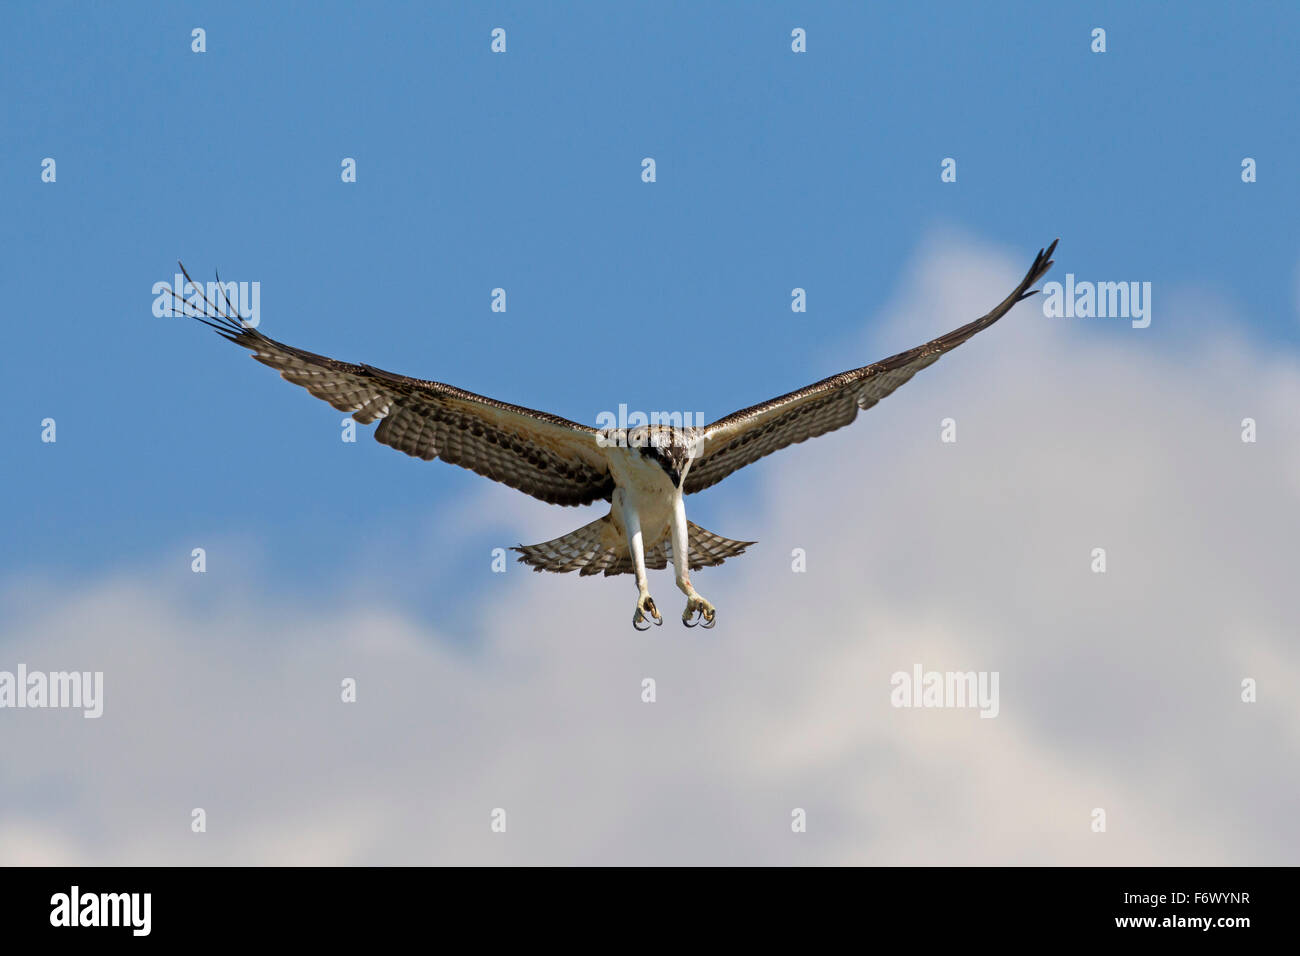 Osprey (Pandion haliaetus) in flight, ready to plunge for fish in lake - Stock Image